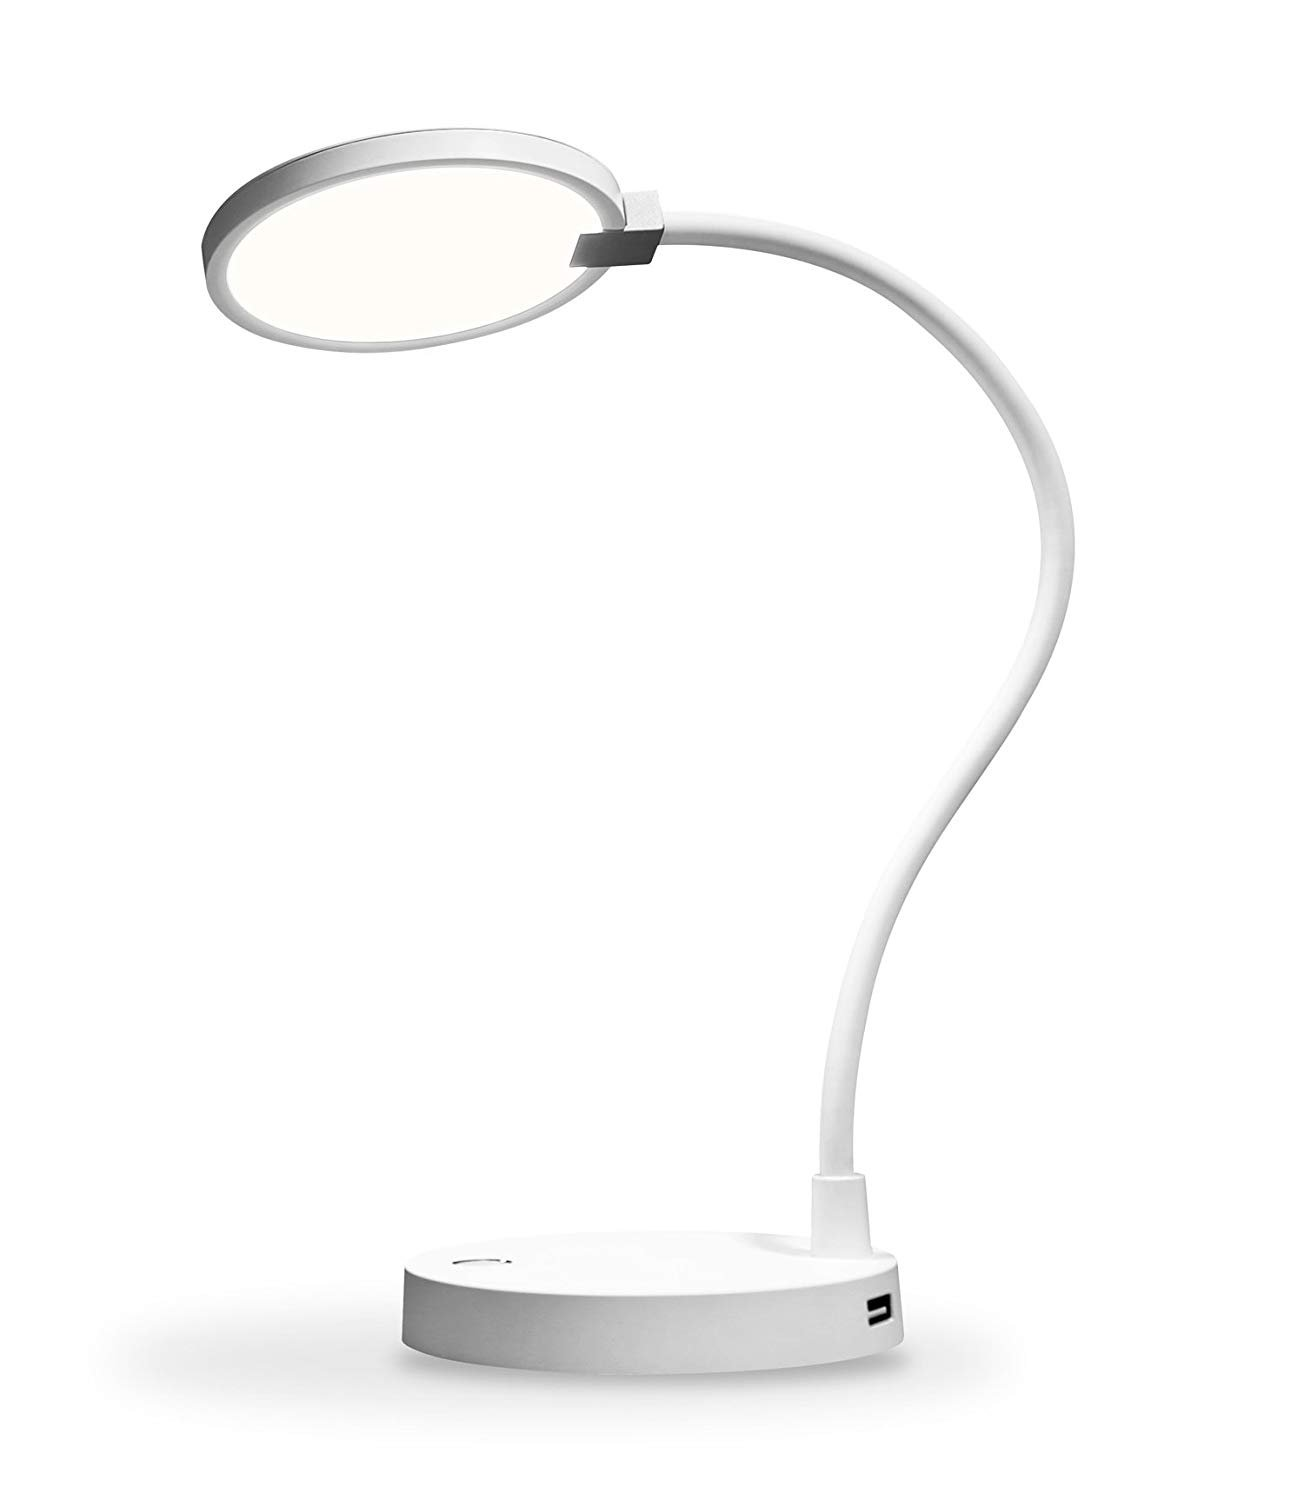 eeco Desk Lamp LED Table Light Dimmable with 4000mAh Power Bank and Two USB Charging Ports Bedside Light Flexible and Rechargeable Gooseneck with Touch Sensor Control Eye Care for Studying and Reading